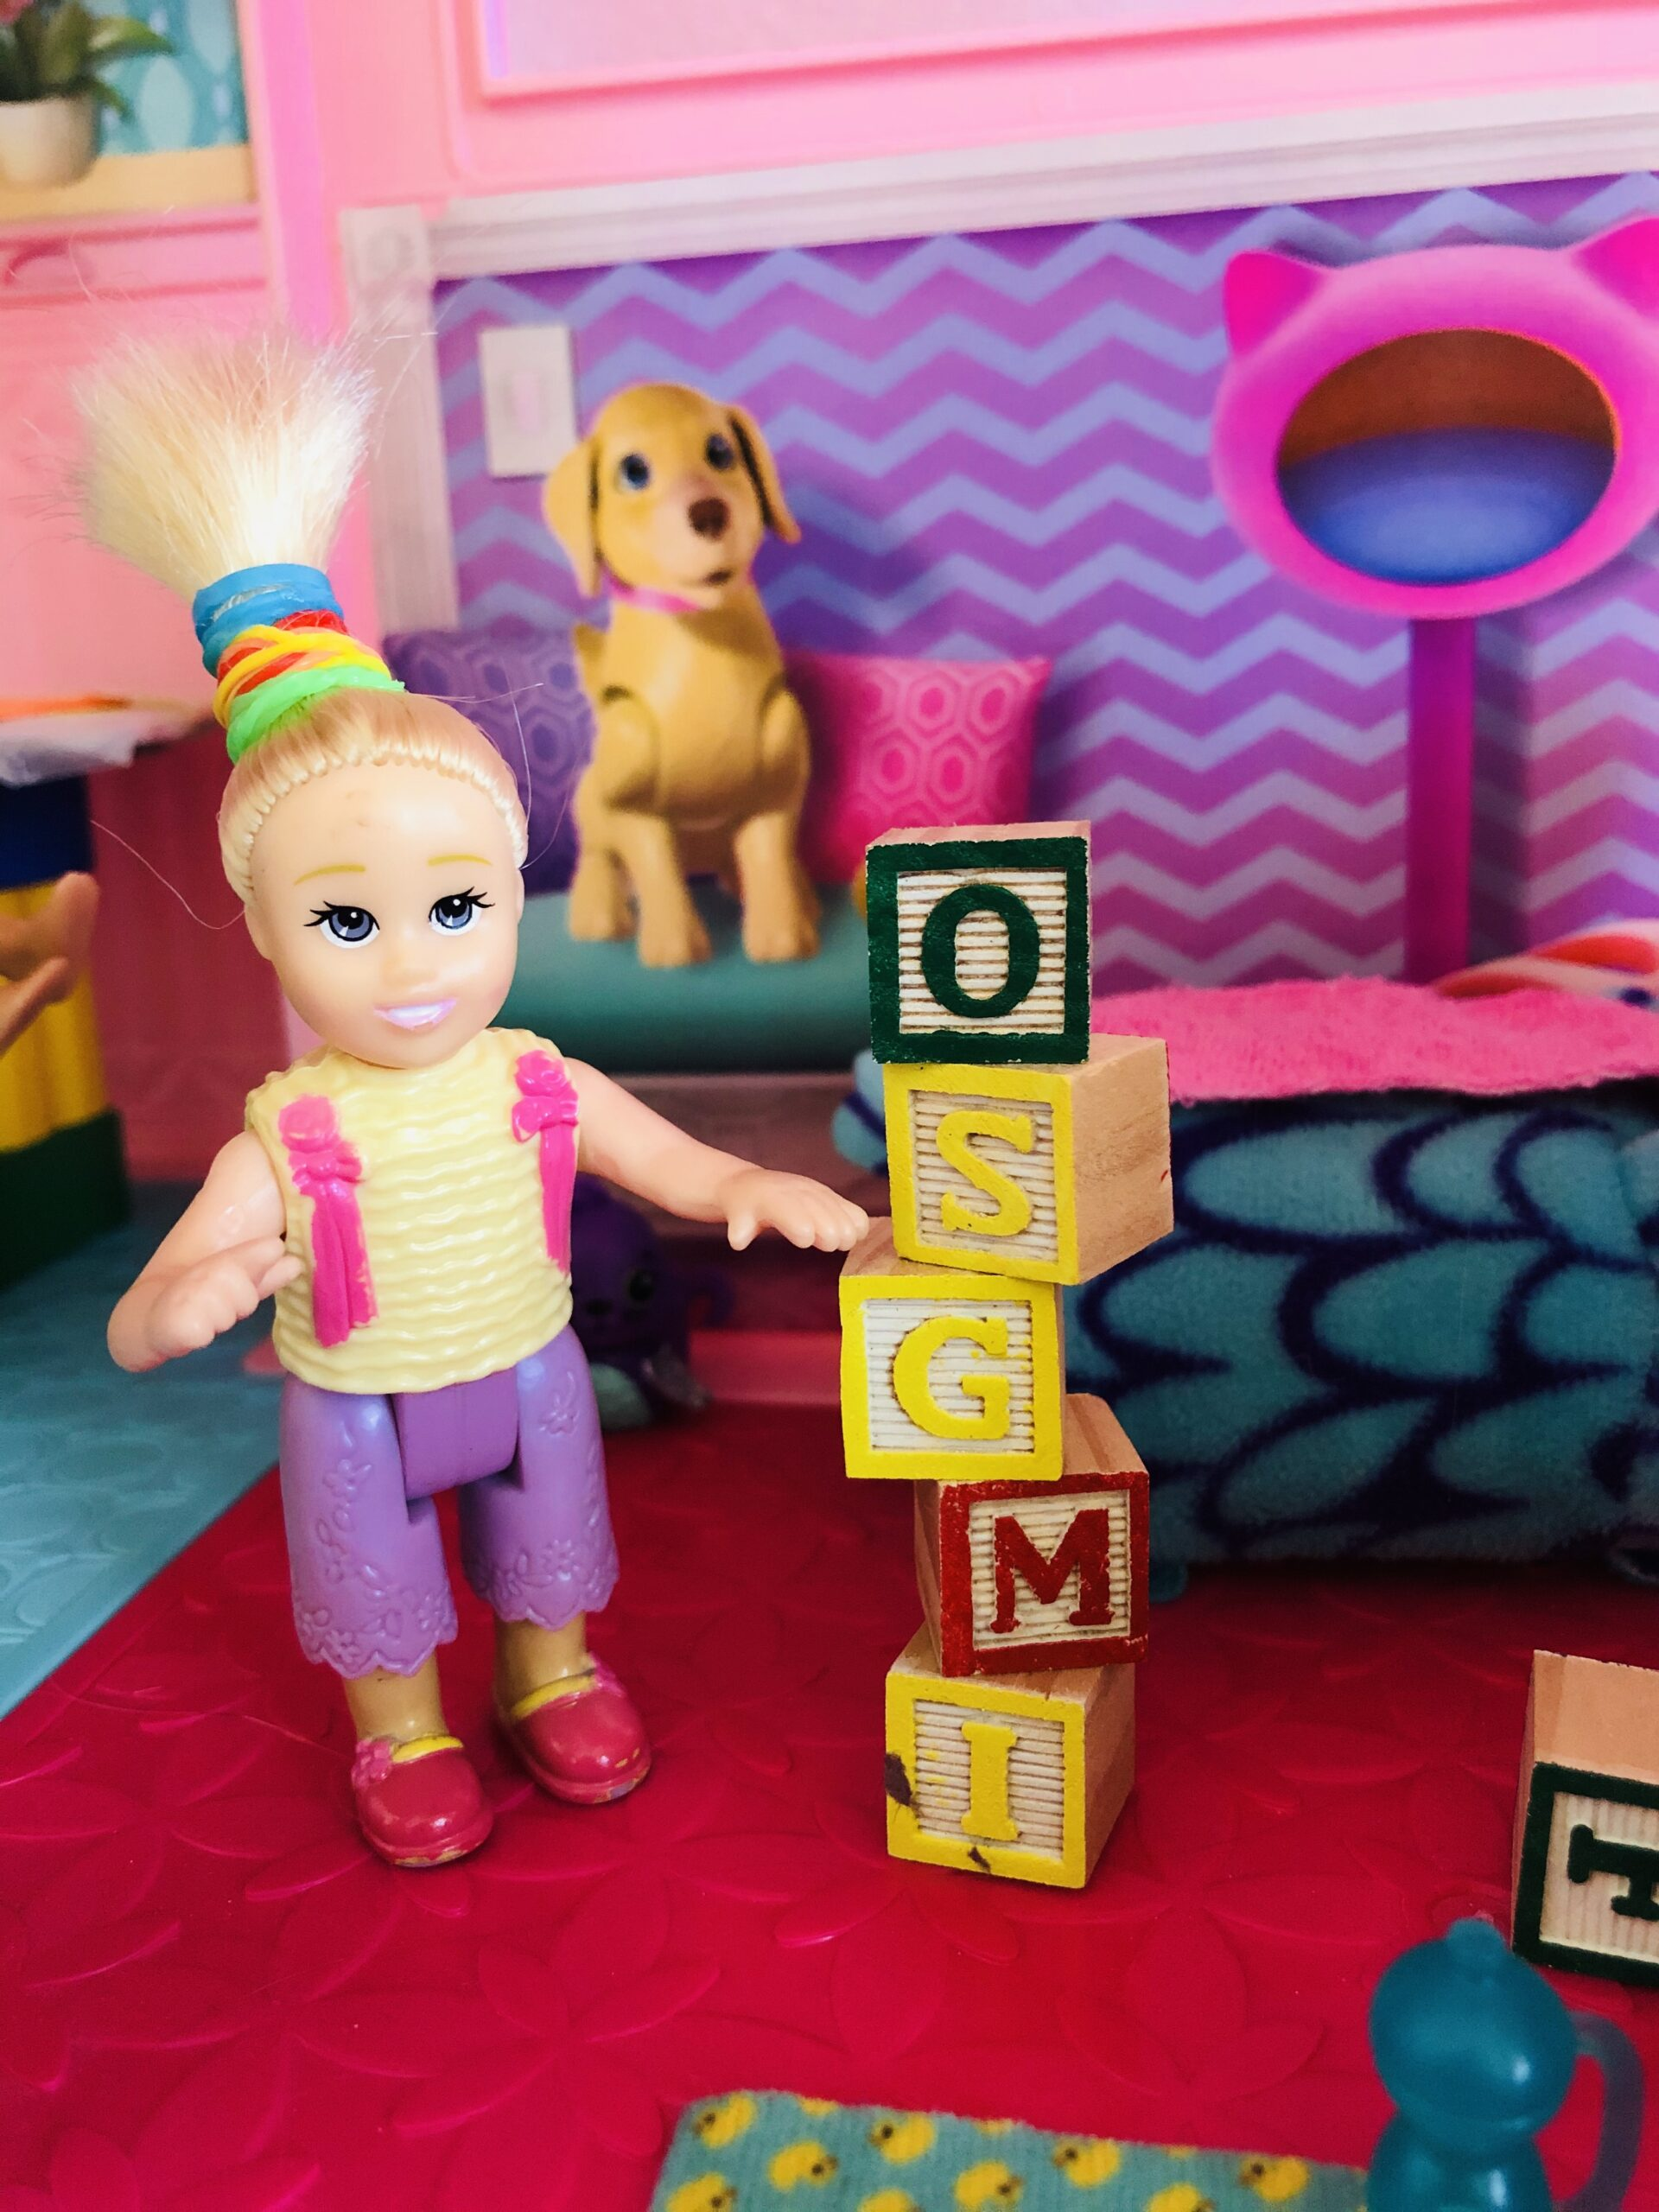 A little doll playing with blocks in the Barbie Dreamhouse.